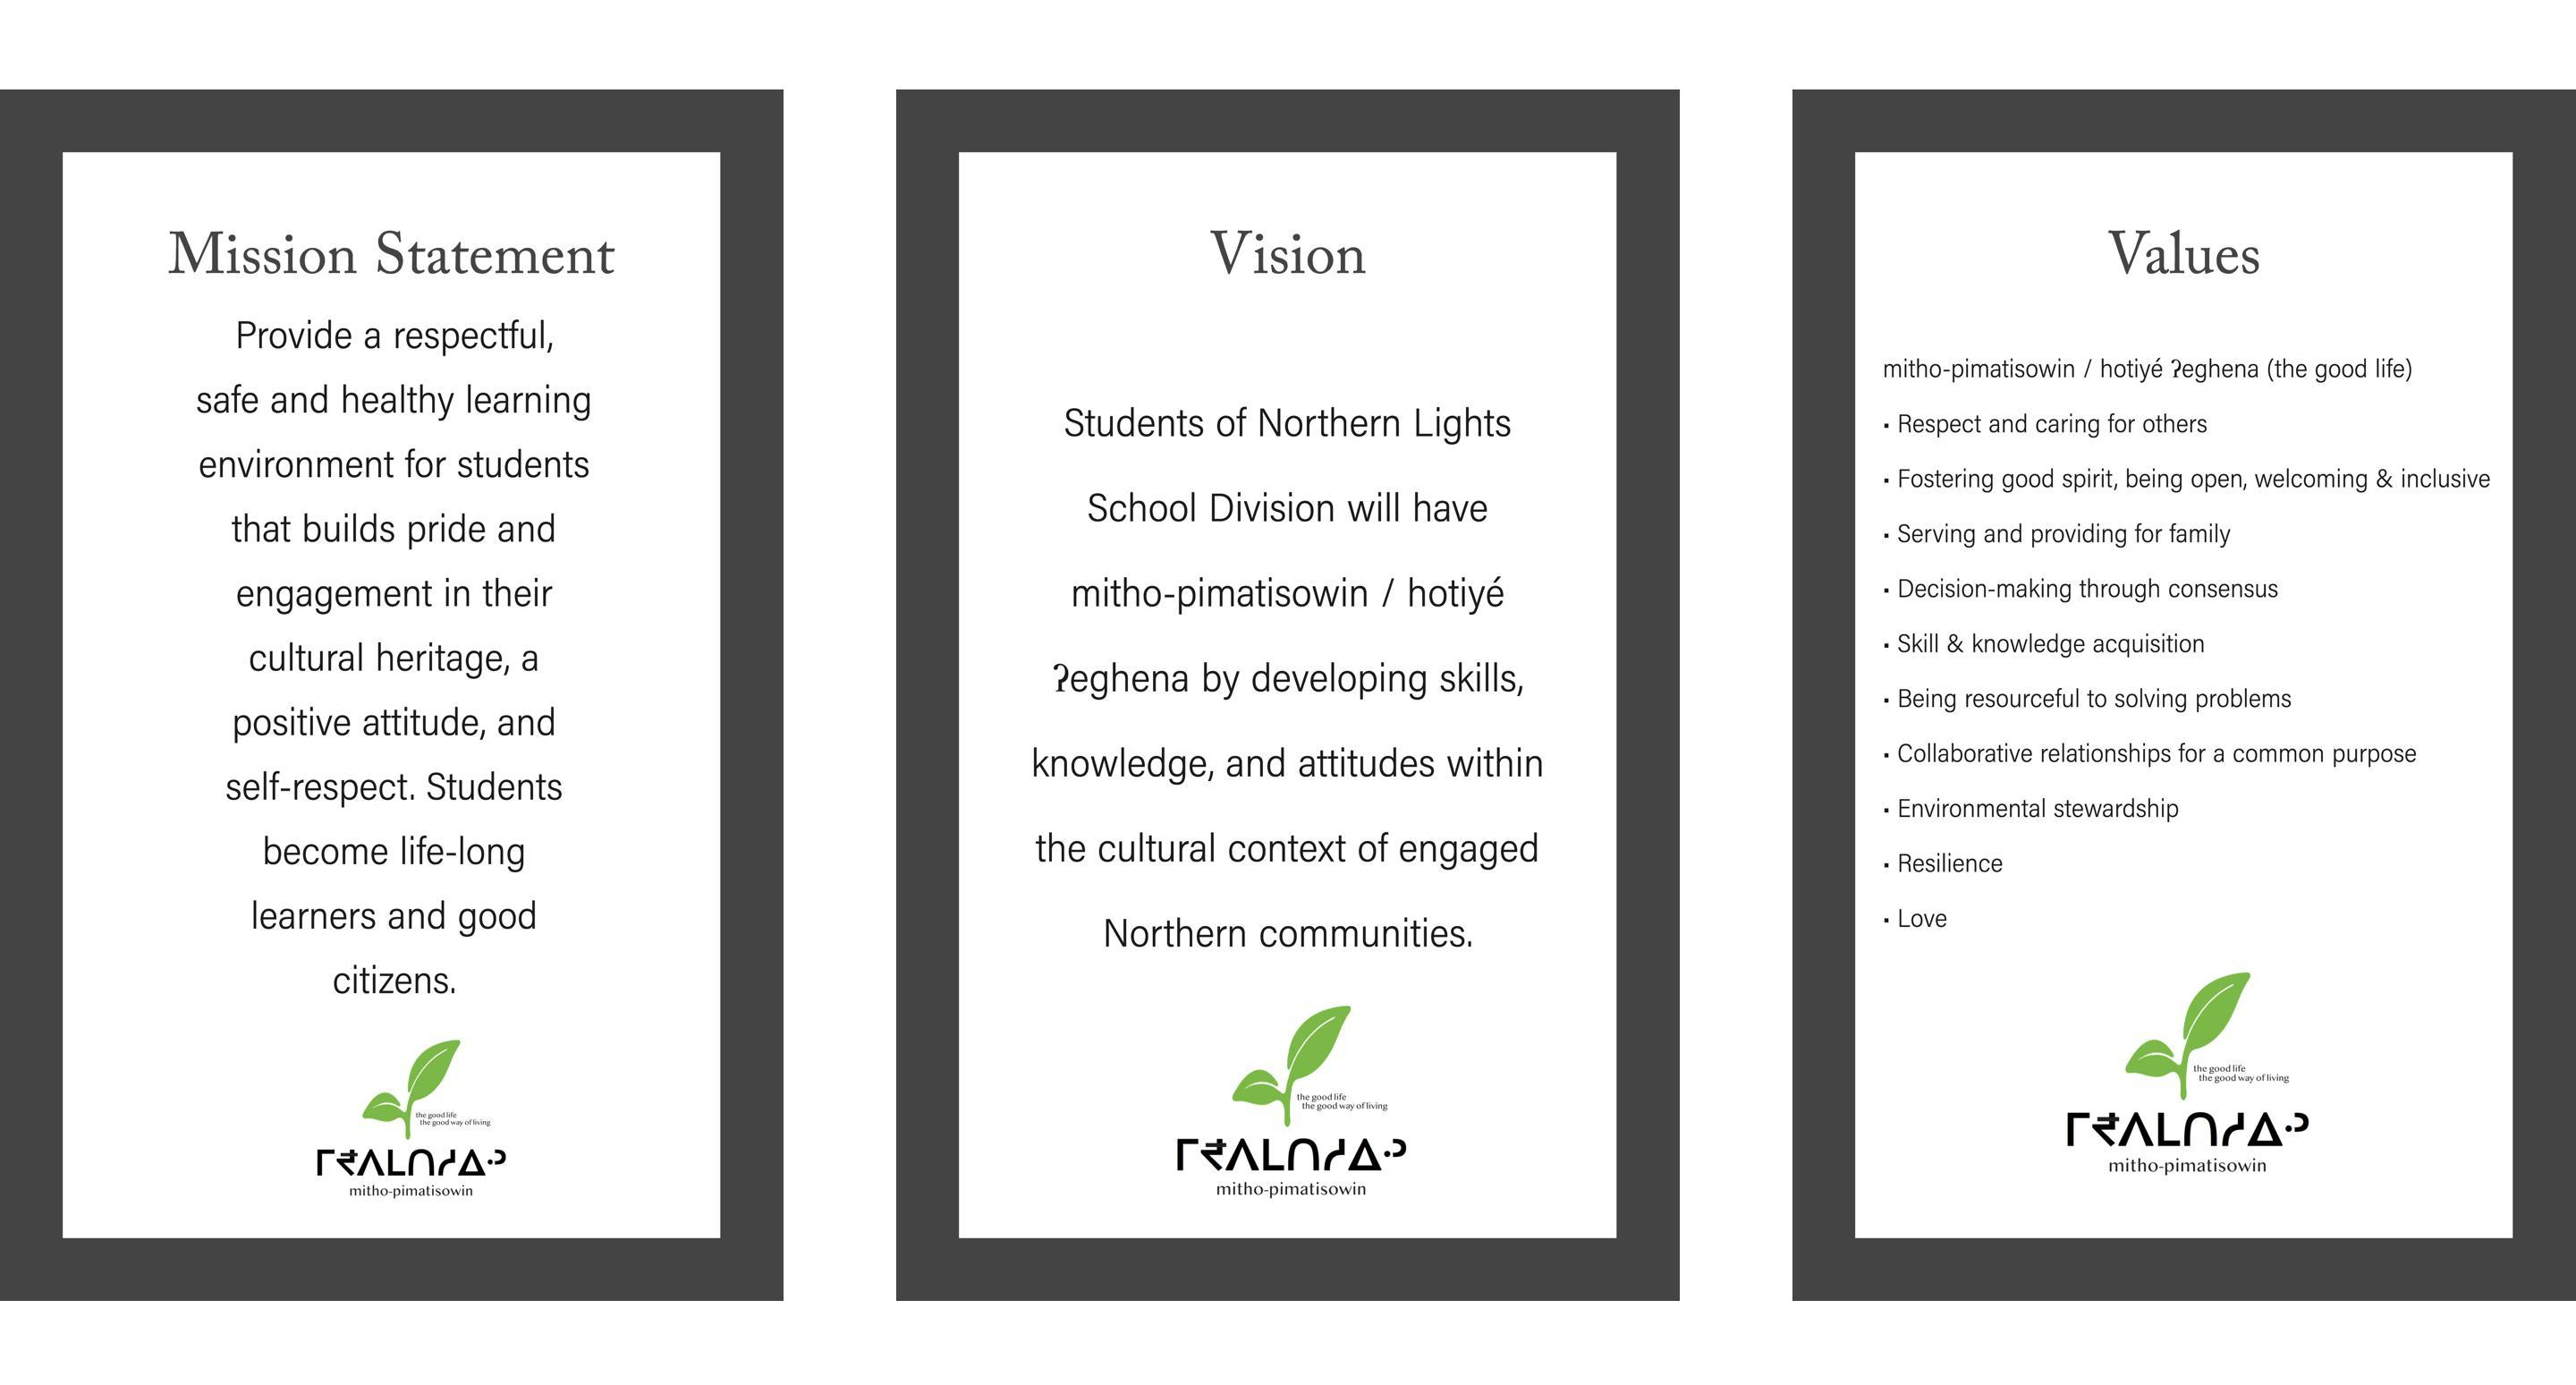 MIssion, Vision, Values Image